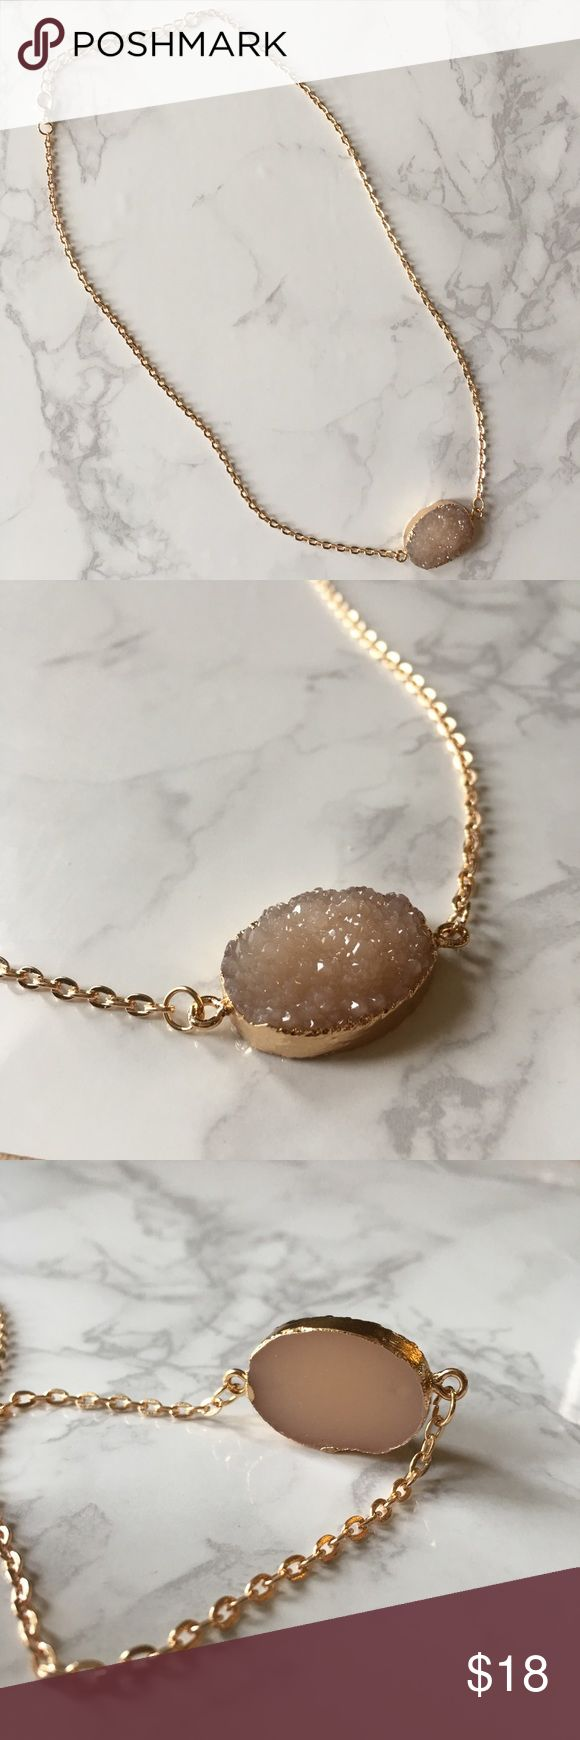 "Blush Druzy Stone Gold Chain Necklace Blush pink druzy crystal stone necklace. Brand new with tags. 22"" length chain. ASOS Jewelry Necklaces"